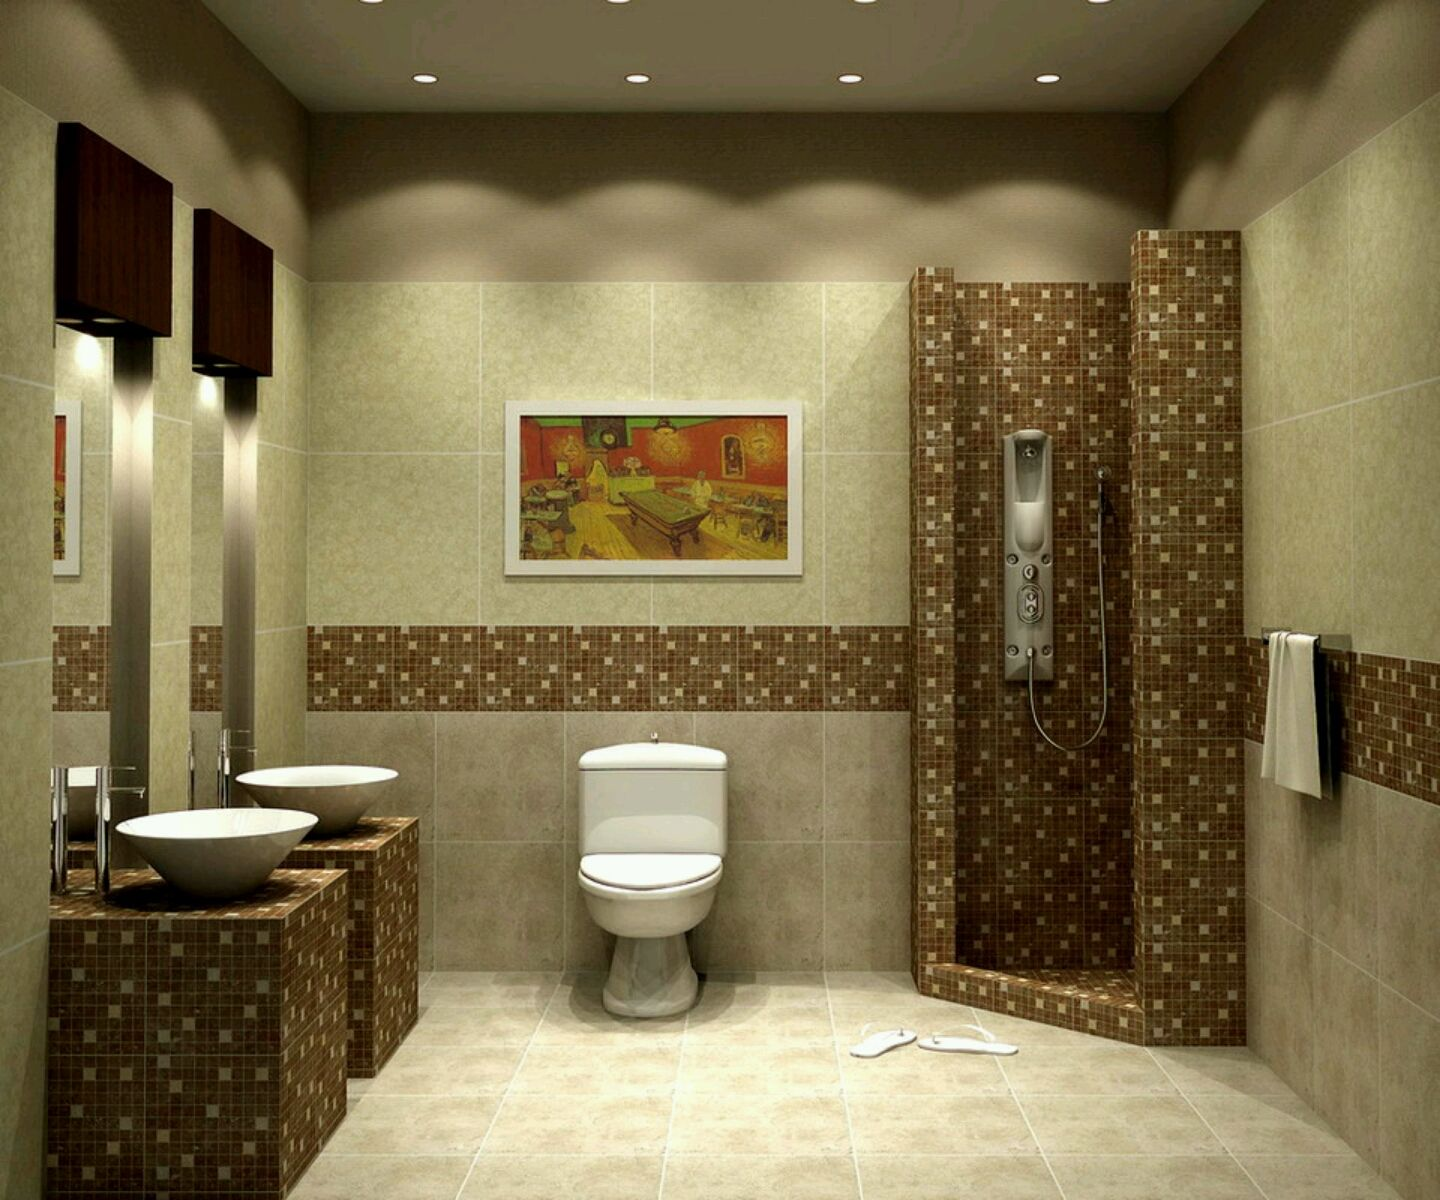 Bathroom Designs 2012 bathroom ideas small ensuite | home decorating ideasbathroom